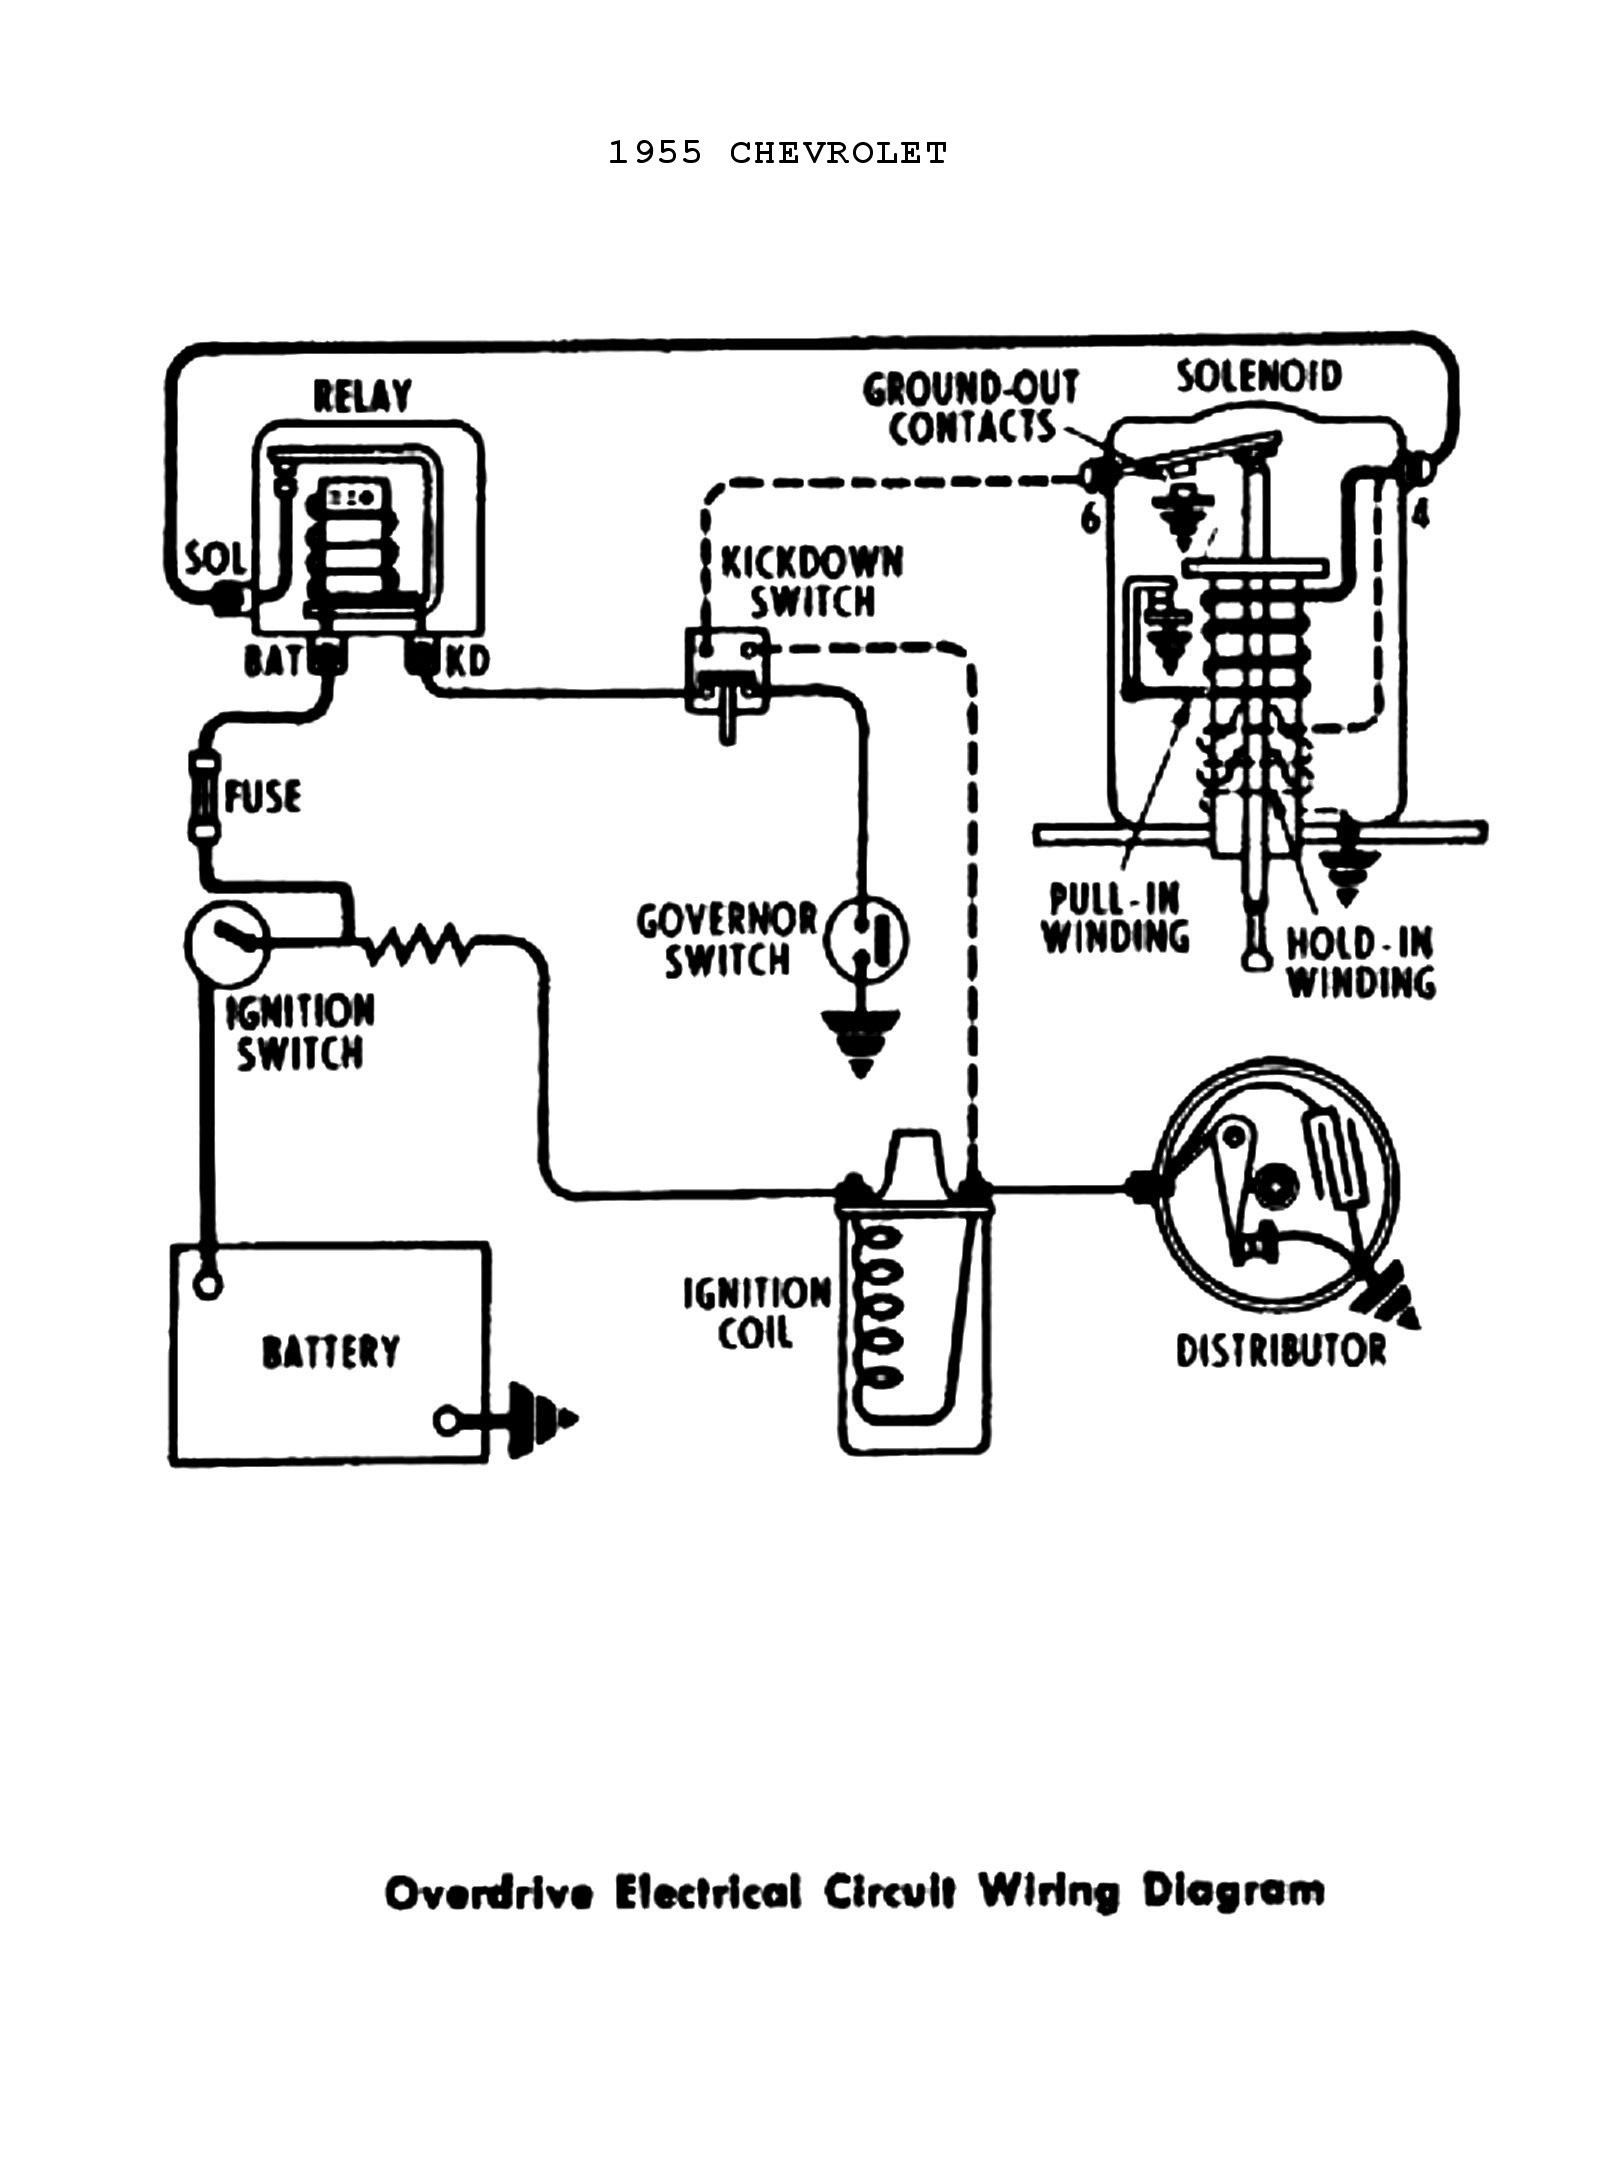 Car Ignition System Wiring Diagram Ignition Switch Wiring Diagram Chevy 55odtrans1 Screnshoots Lovely Of Car Ignition System Wiring Diagram